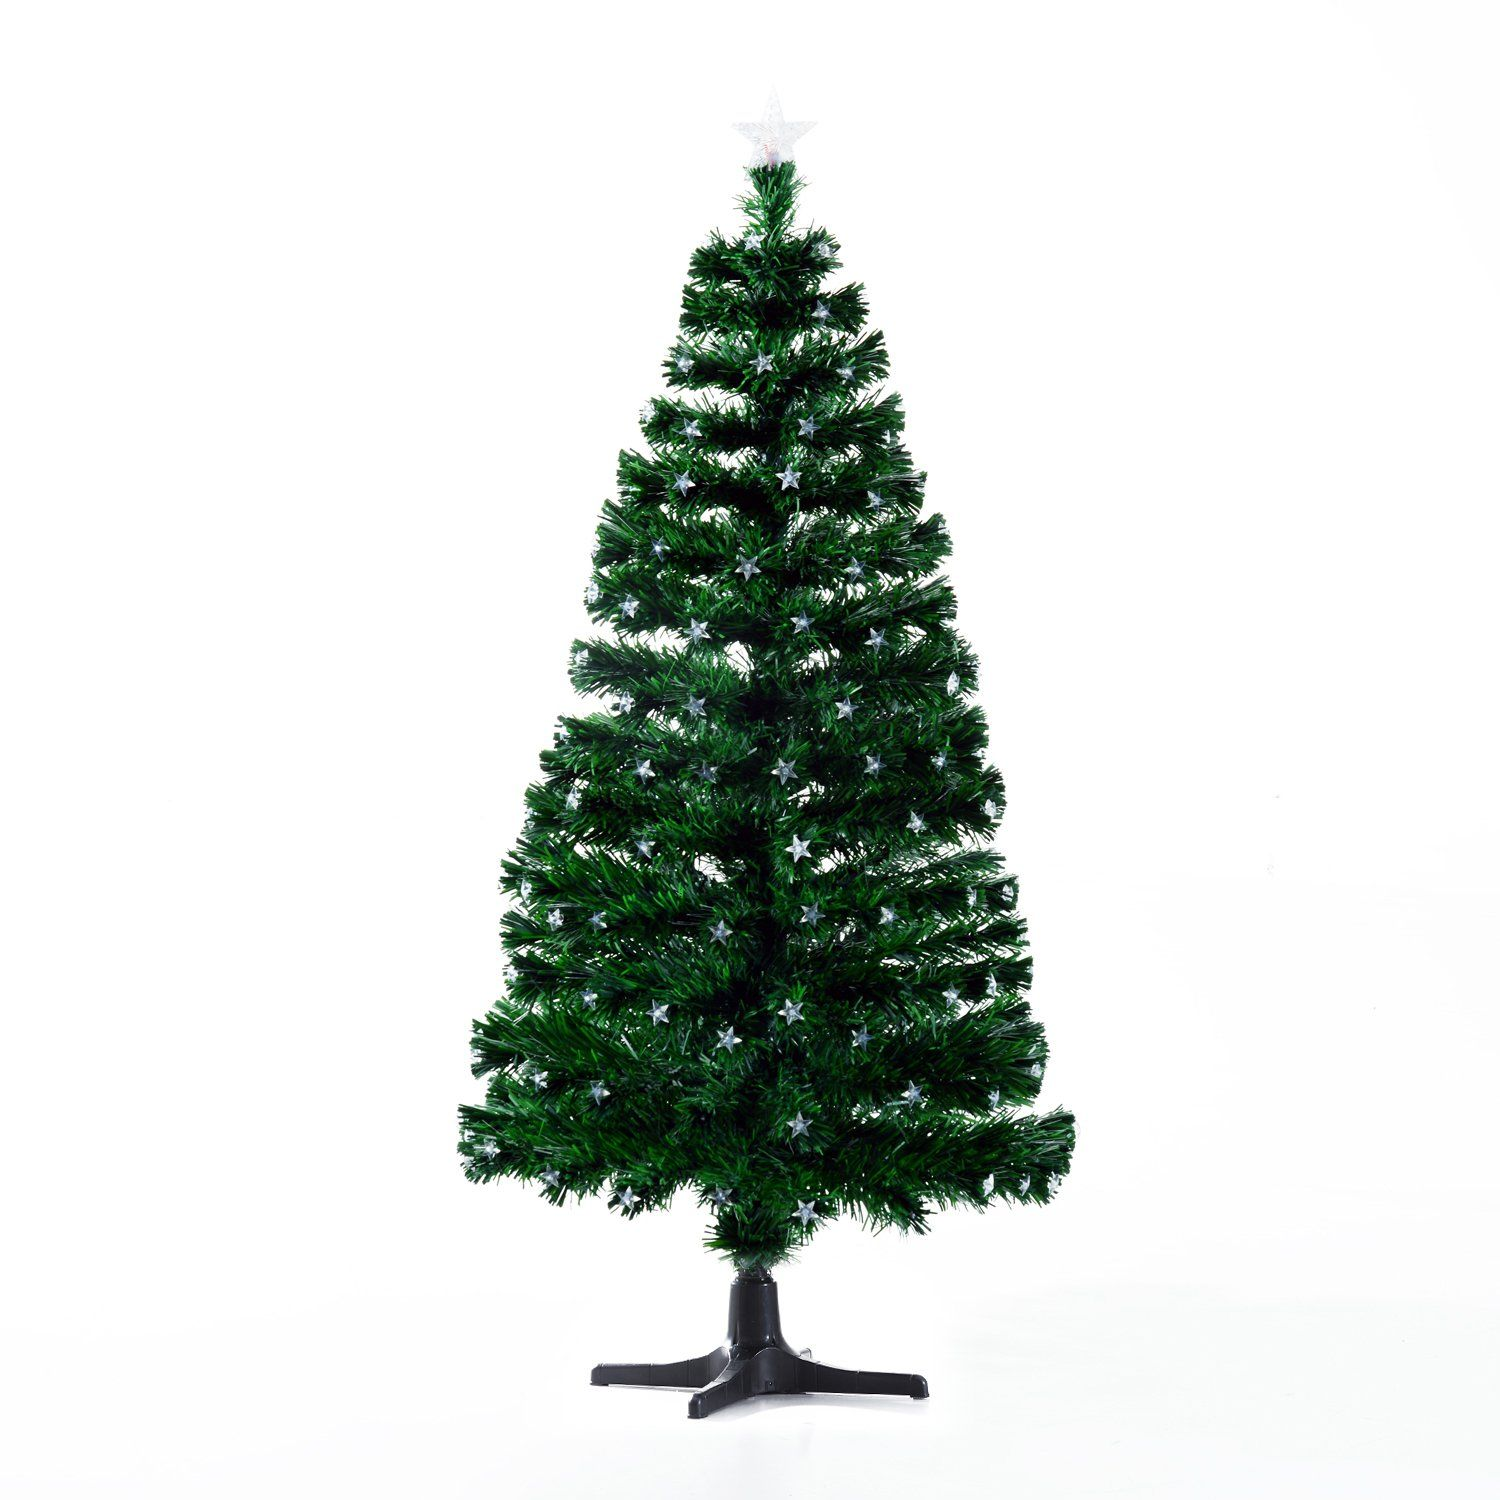 Homcom Rotating 7 5 Ft Tall Artificial Fiber Optic Led Prelit Holiday Christmas Tree Find Out More Led Christmas Tree Christmas Tree Holiday Christmas Tree Pre lit rotating christmas tree